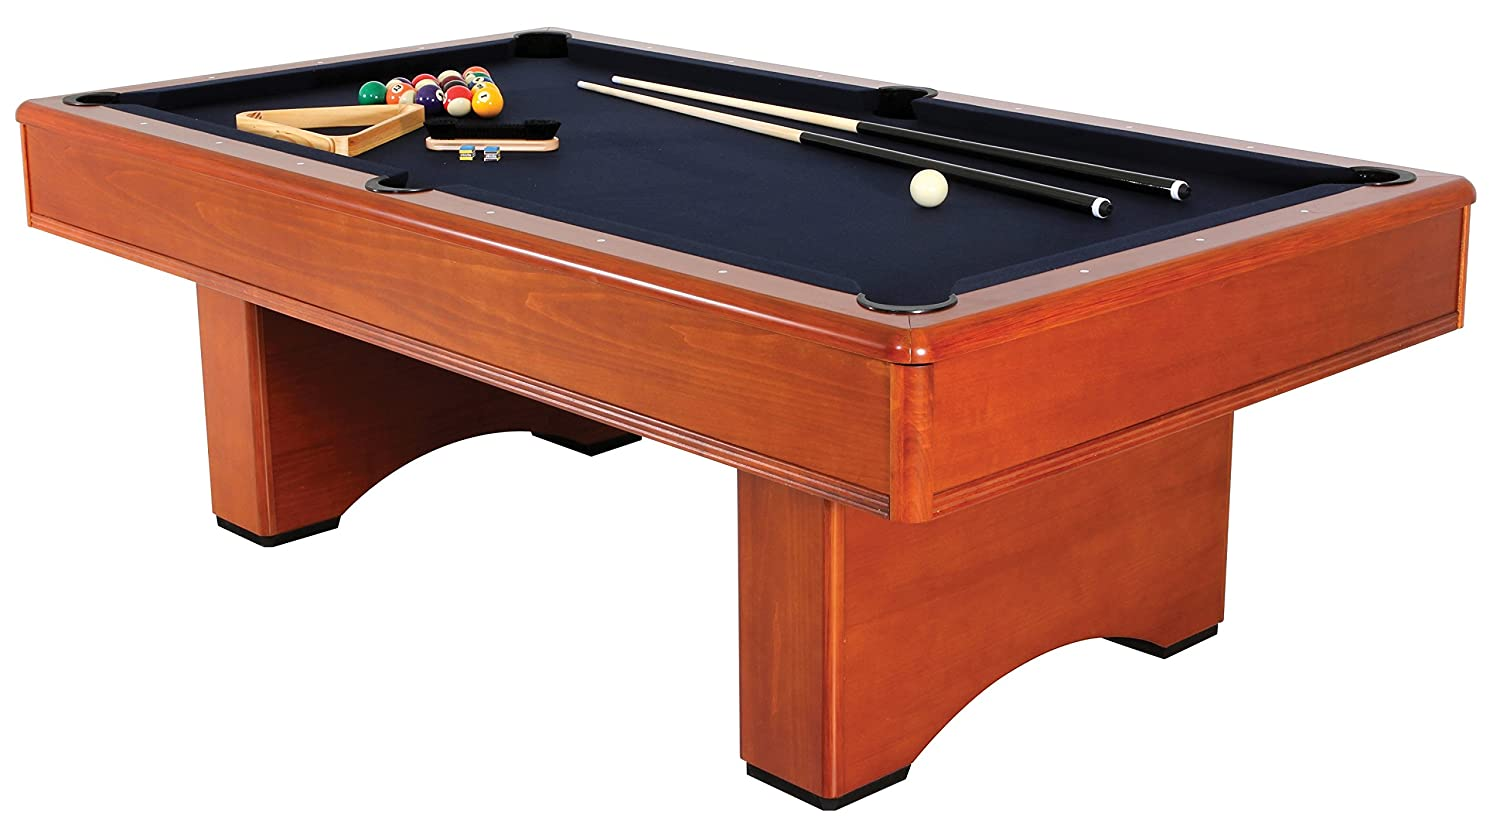 Amazoncom Minnesota Fats Westmont Billiard Table Pool Tables - Fats pool table